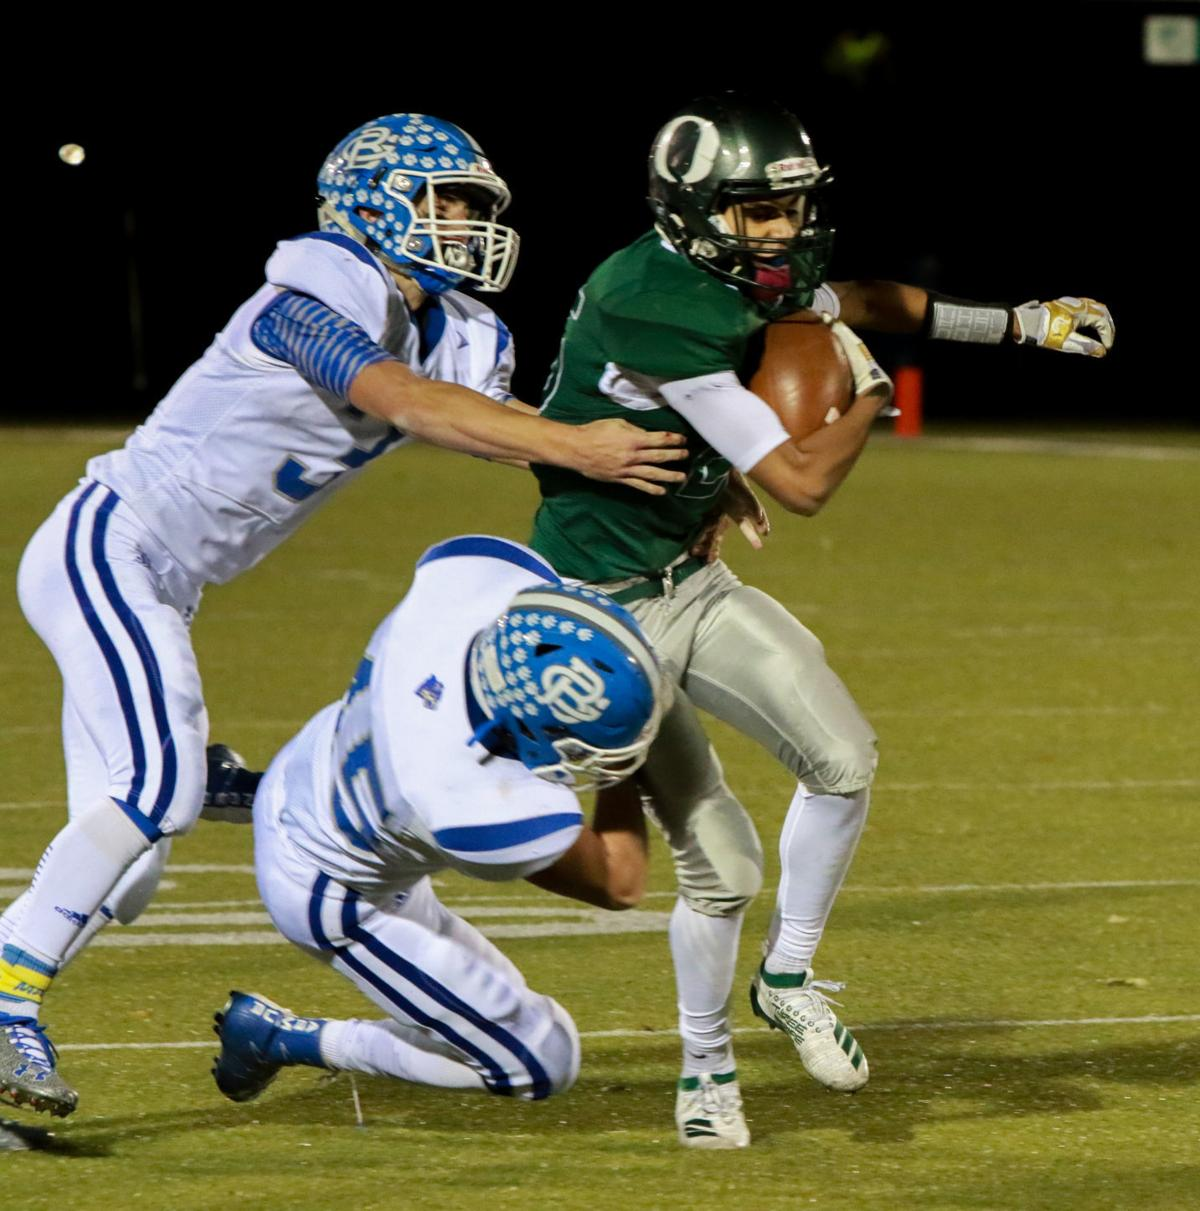 Football - Boone Grove at Whiting Sectional